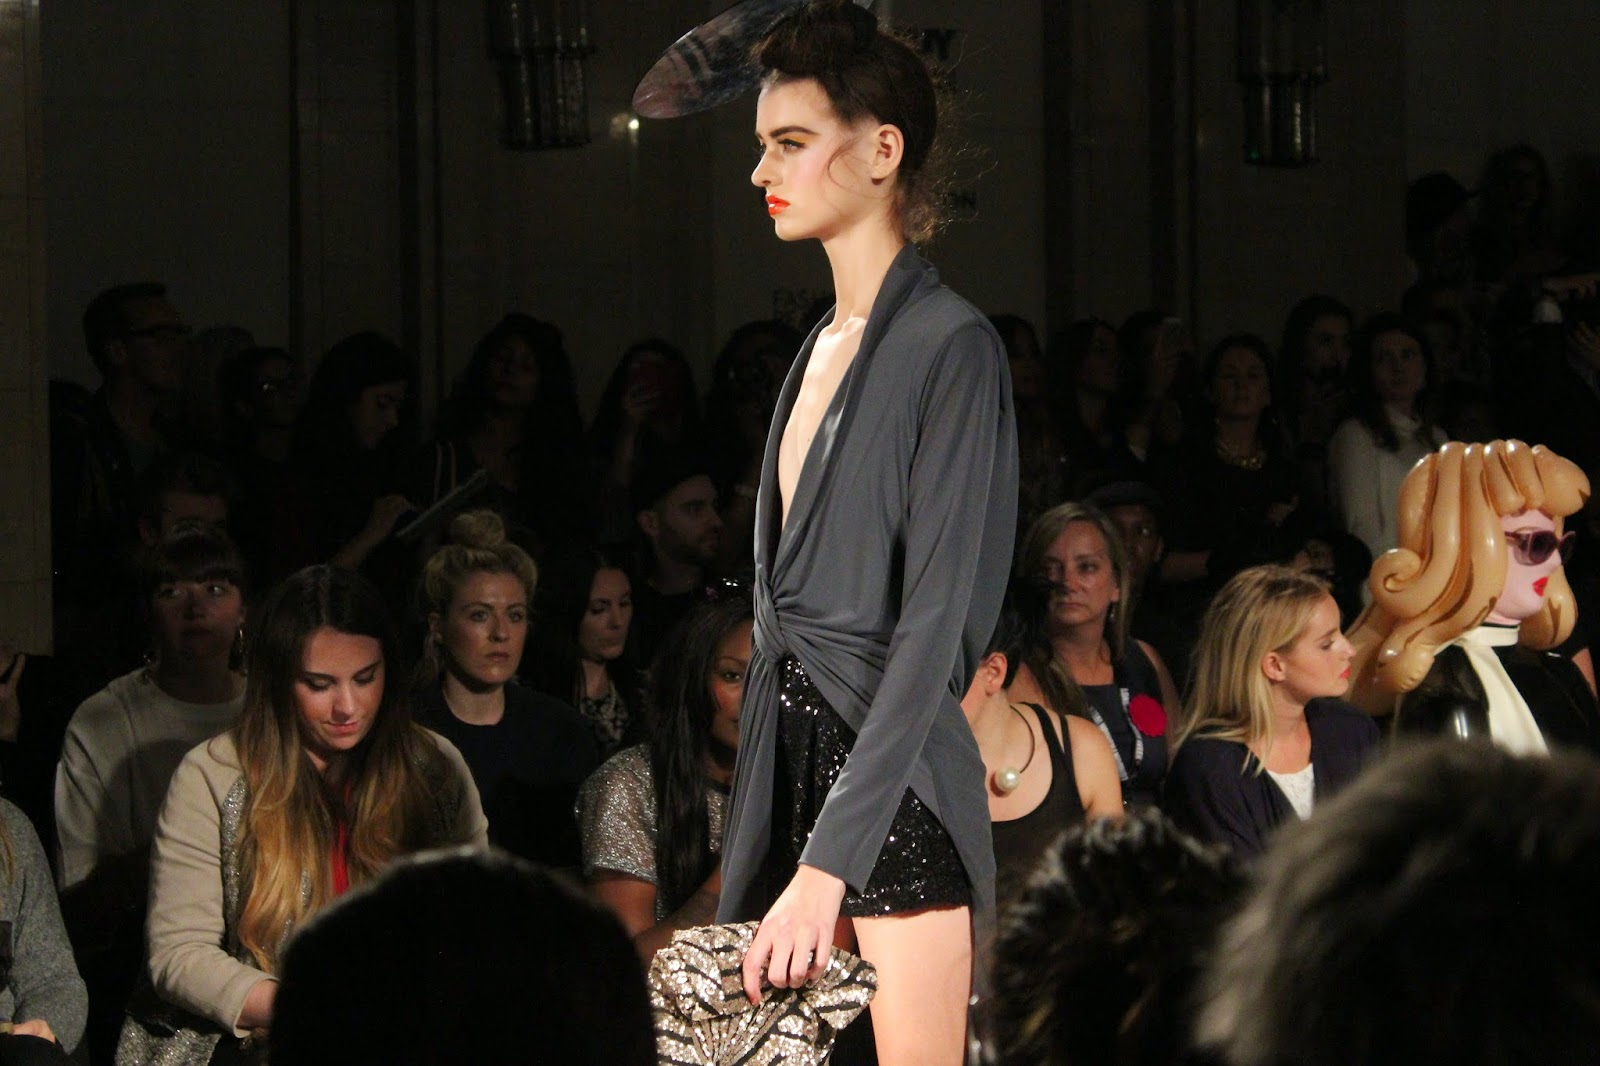 london-fashion-week-2014-lfw-spring-summer-2015-blogger-fashion-freemasons hall-fashion-scout-ashley-isham-catwalk-models-dress-top-shorts